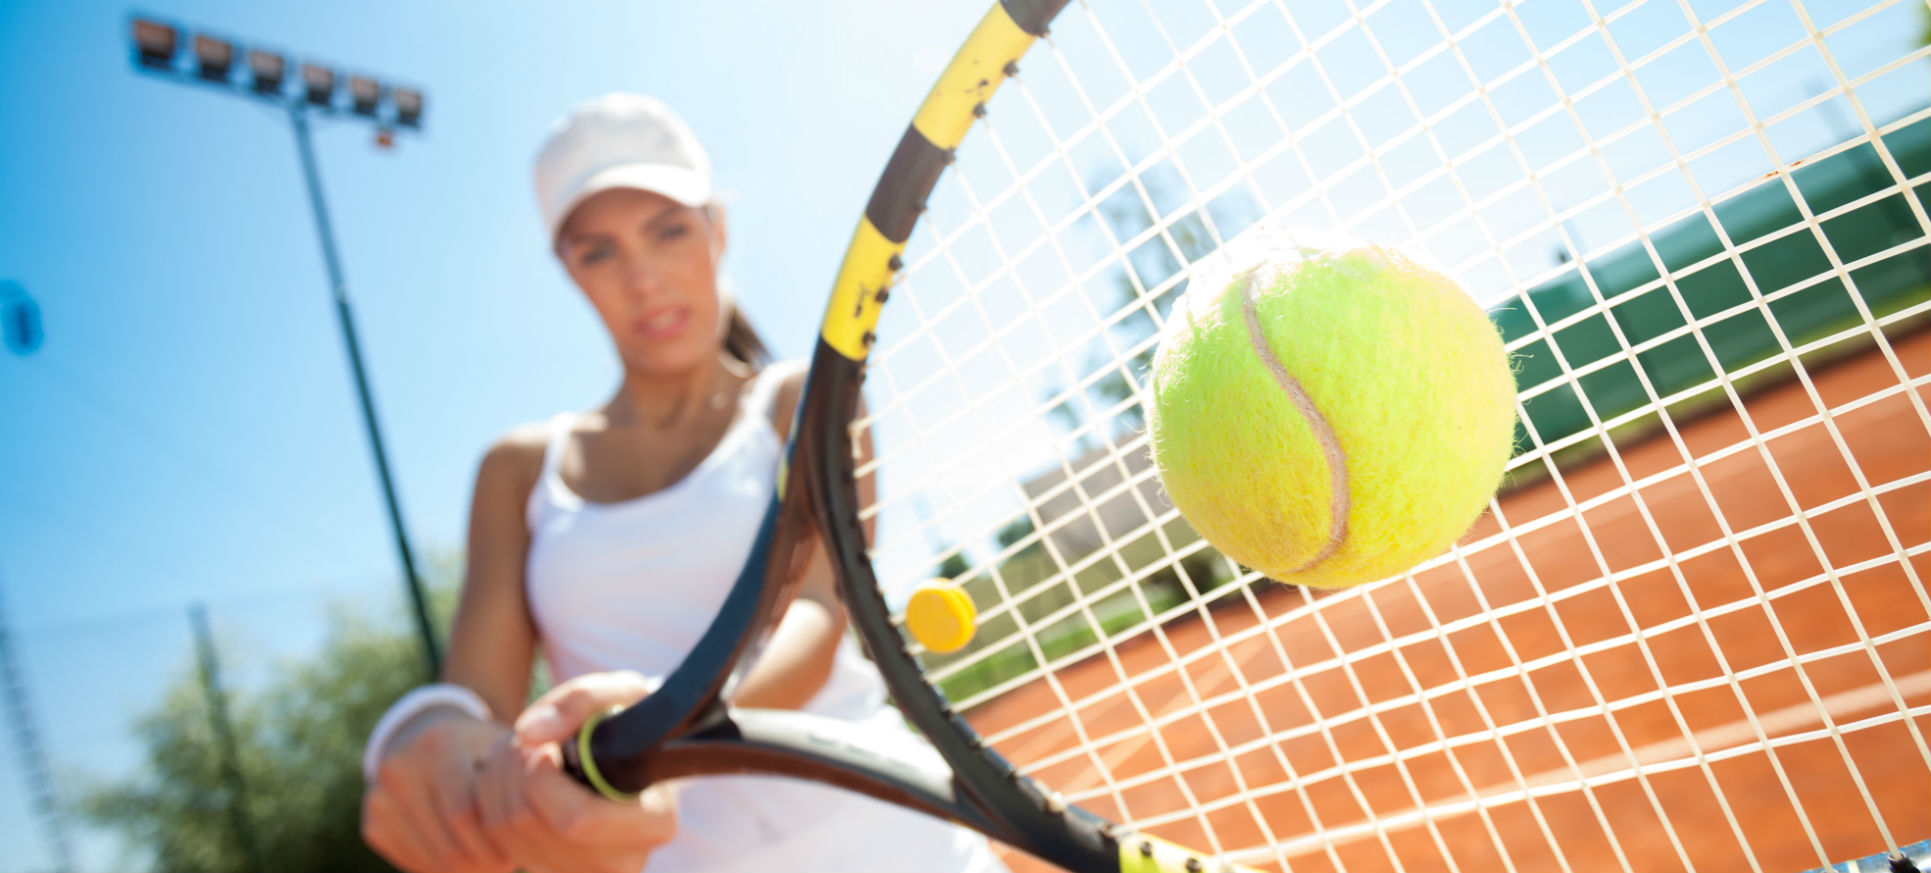 Northern Beaches Tennis Academy